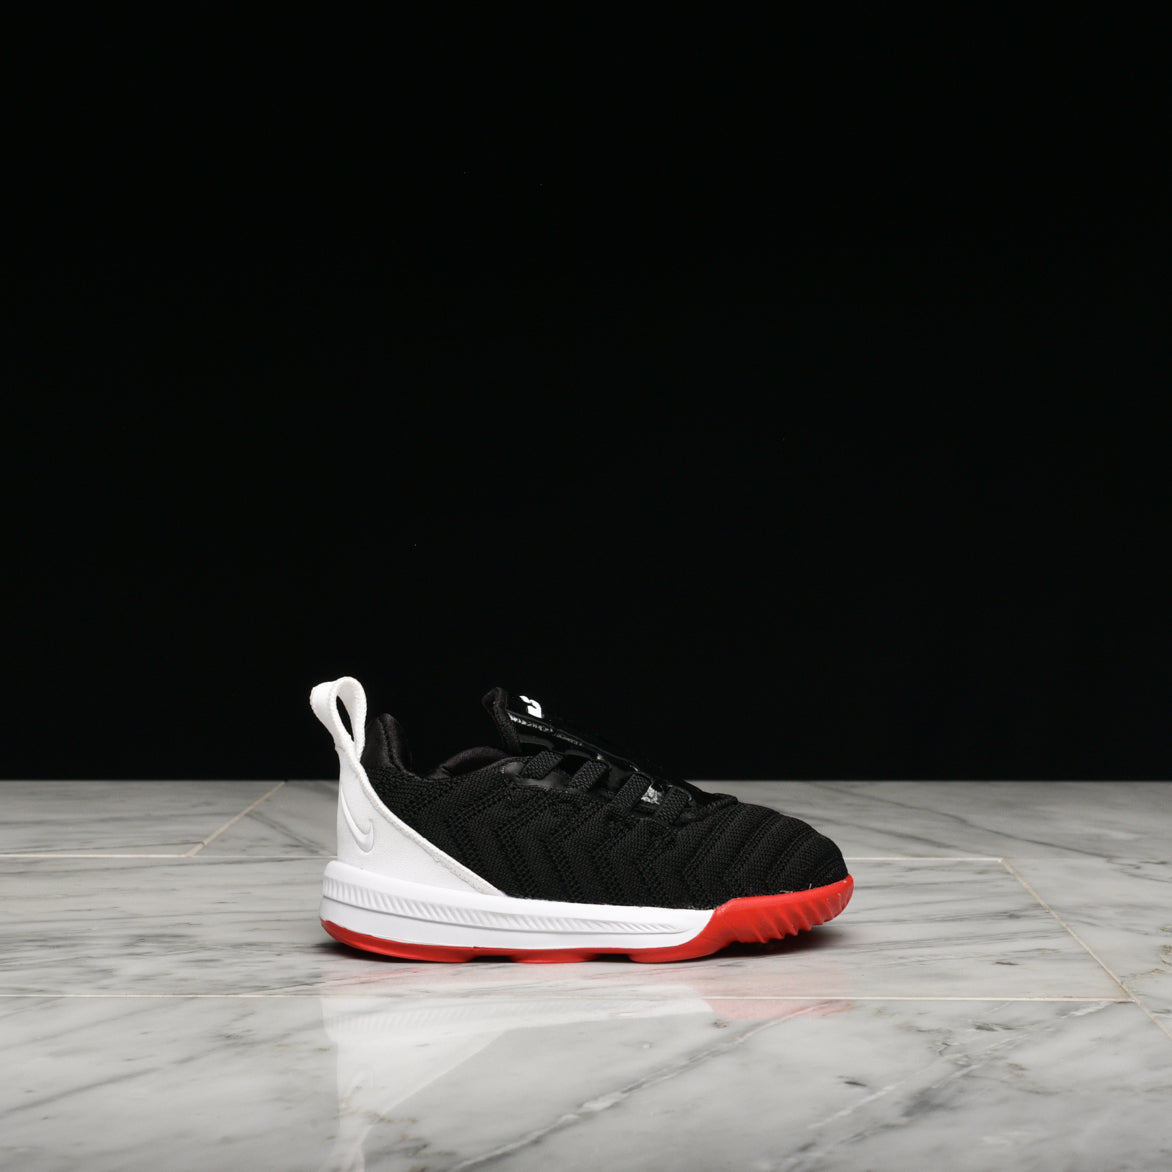 LEBRON XVI (TD) - BLACK / WHITE / UNIVERSITY RED